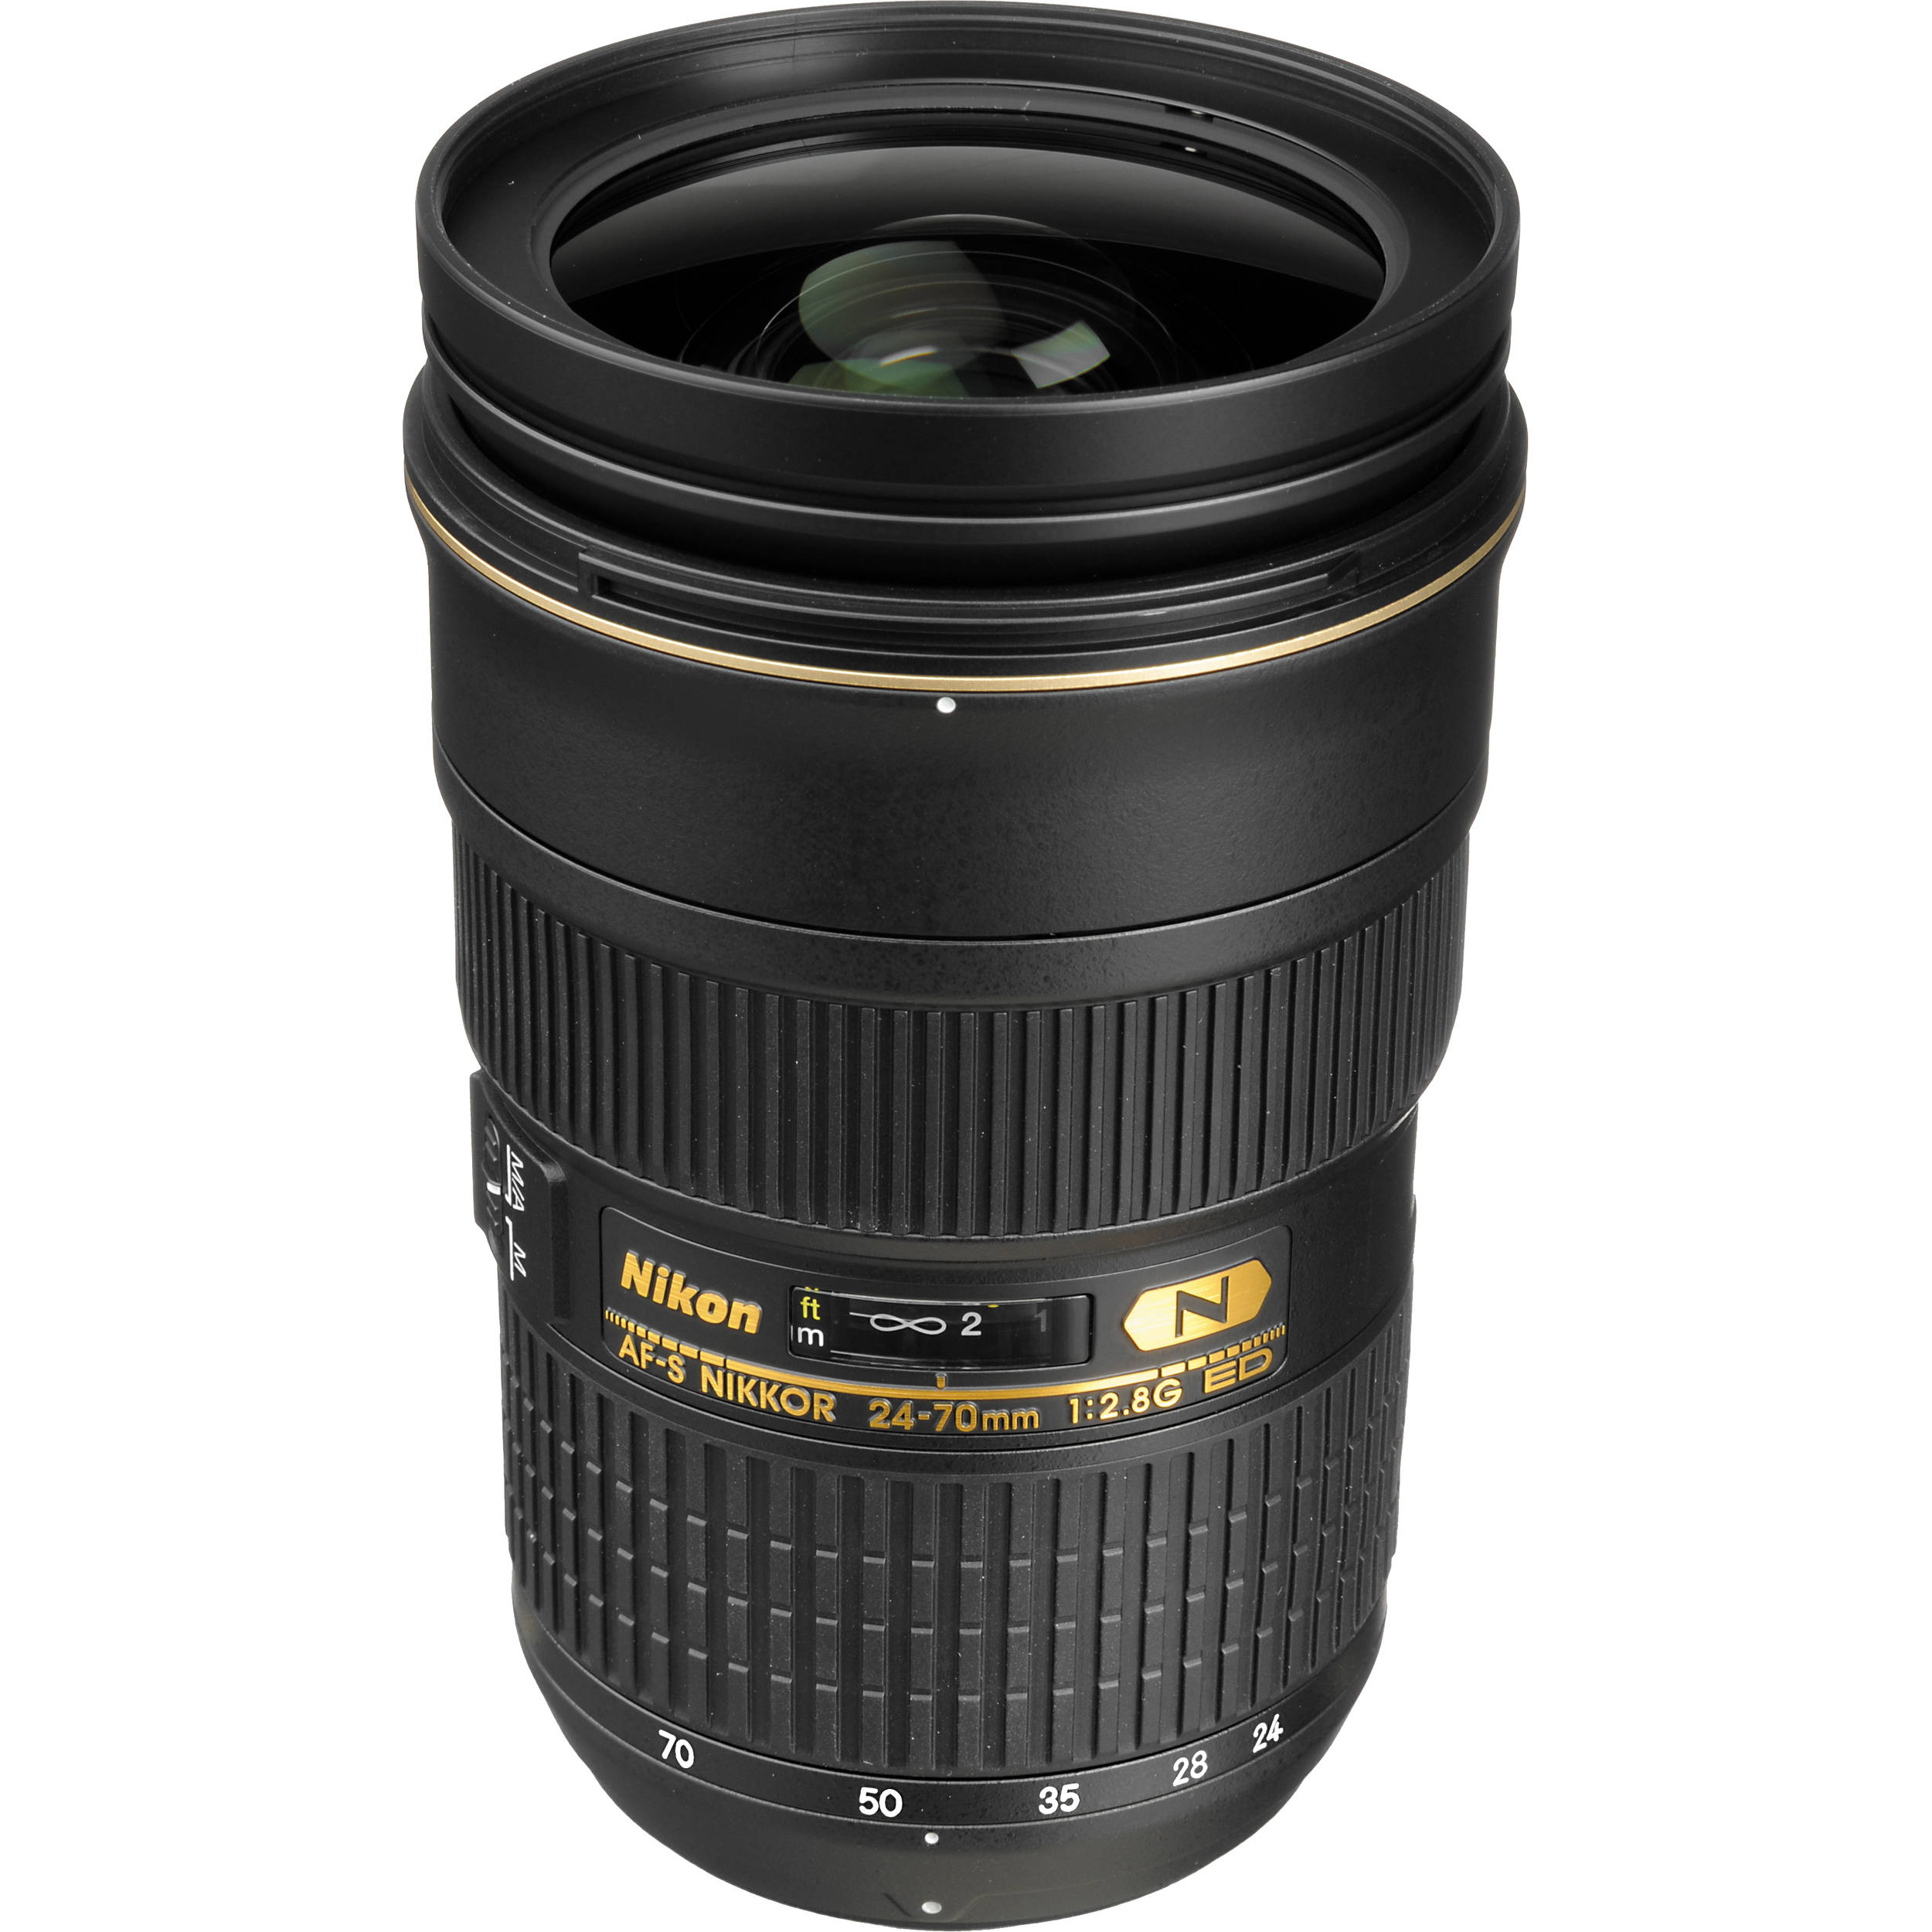 nikon af s nikkor 24 70mm f 2 8g ed lens 2164 b h photo video. Black Bedroom Furniture Sets. Home Design Ideas